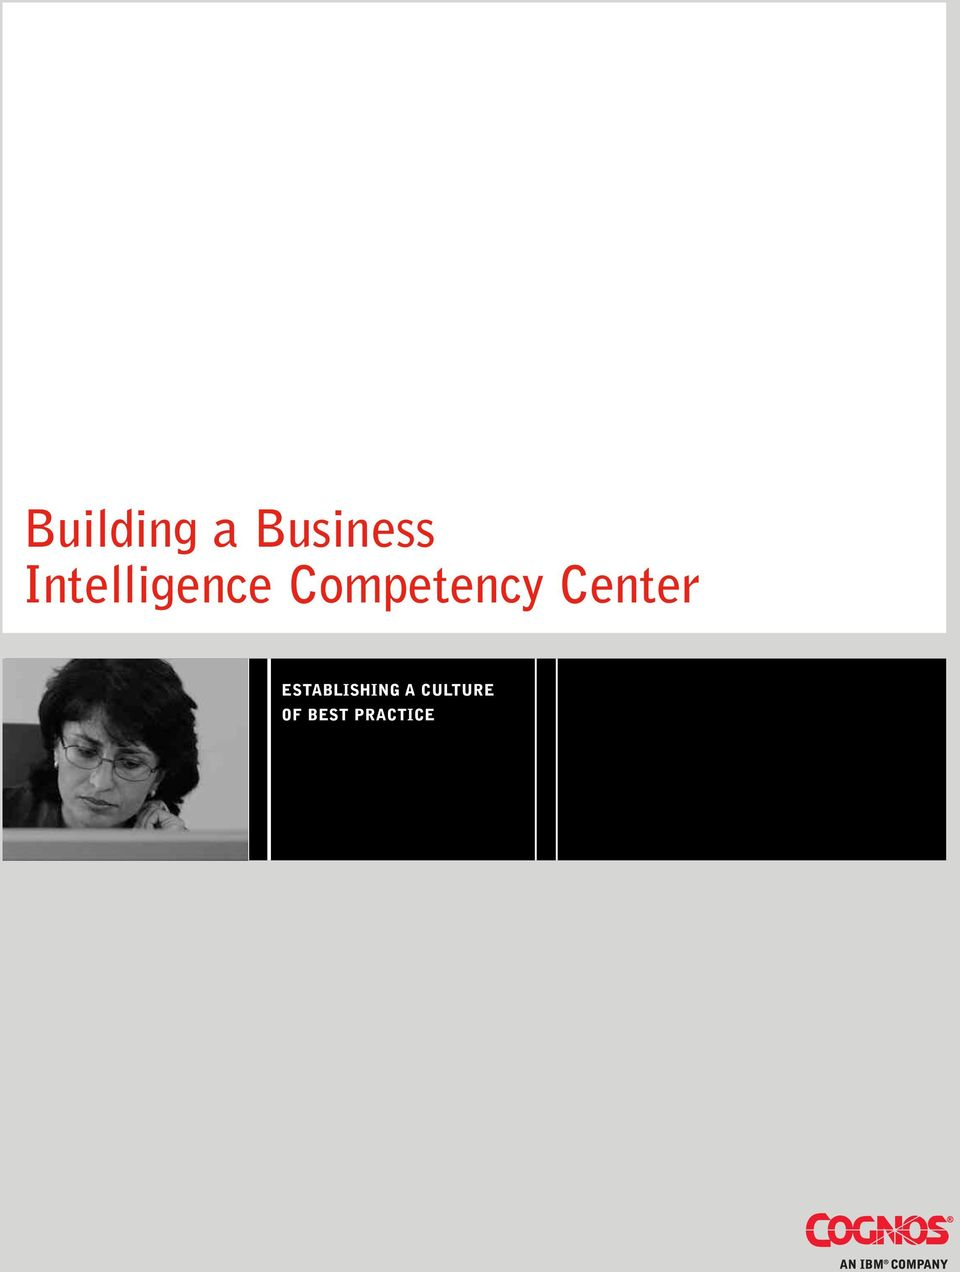 Competency Center